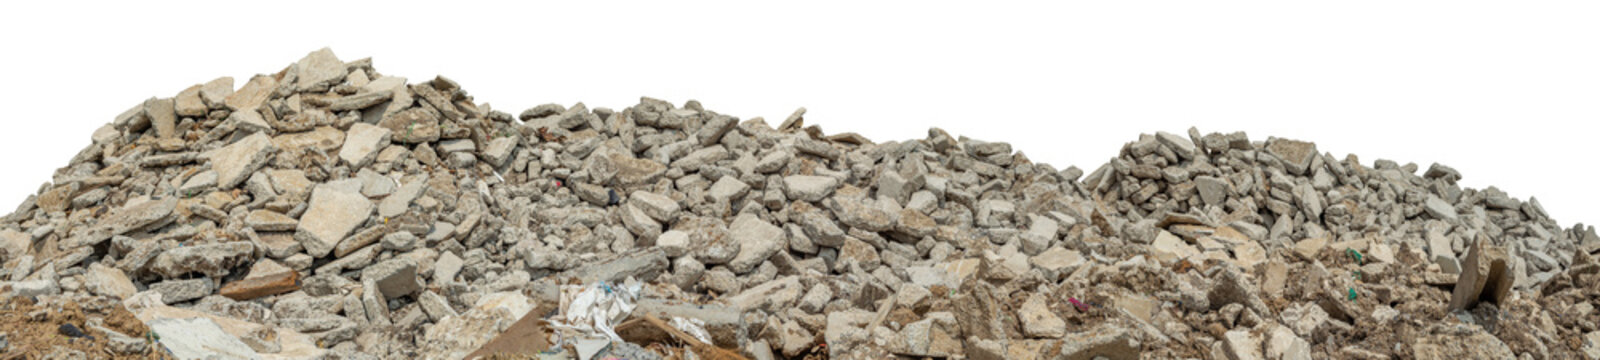 Ruined rubble isolated on white background have clipping path